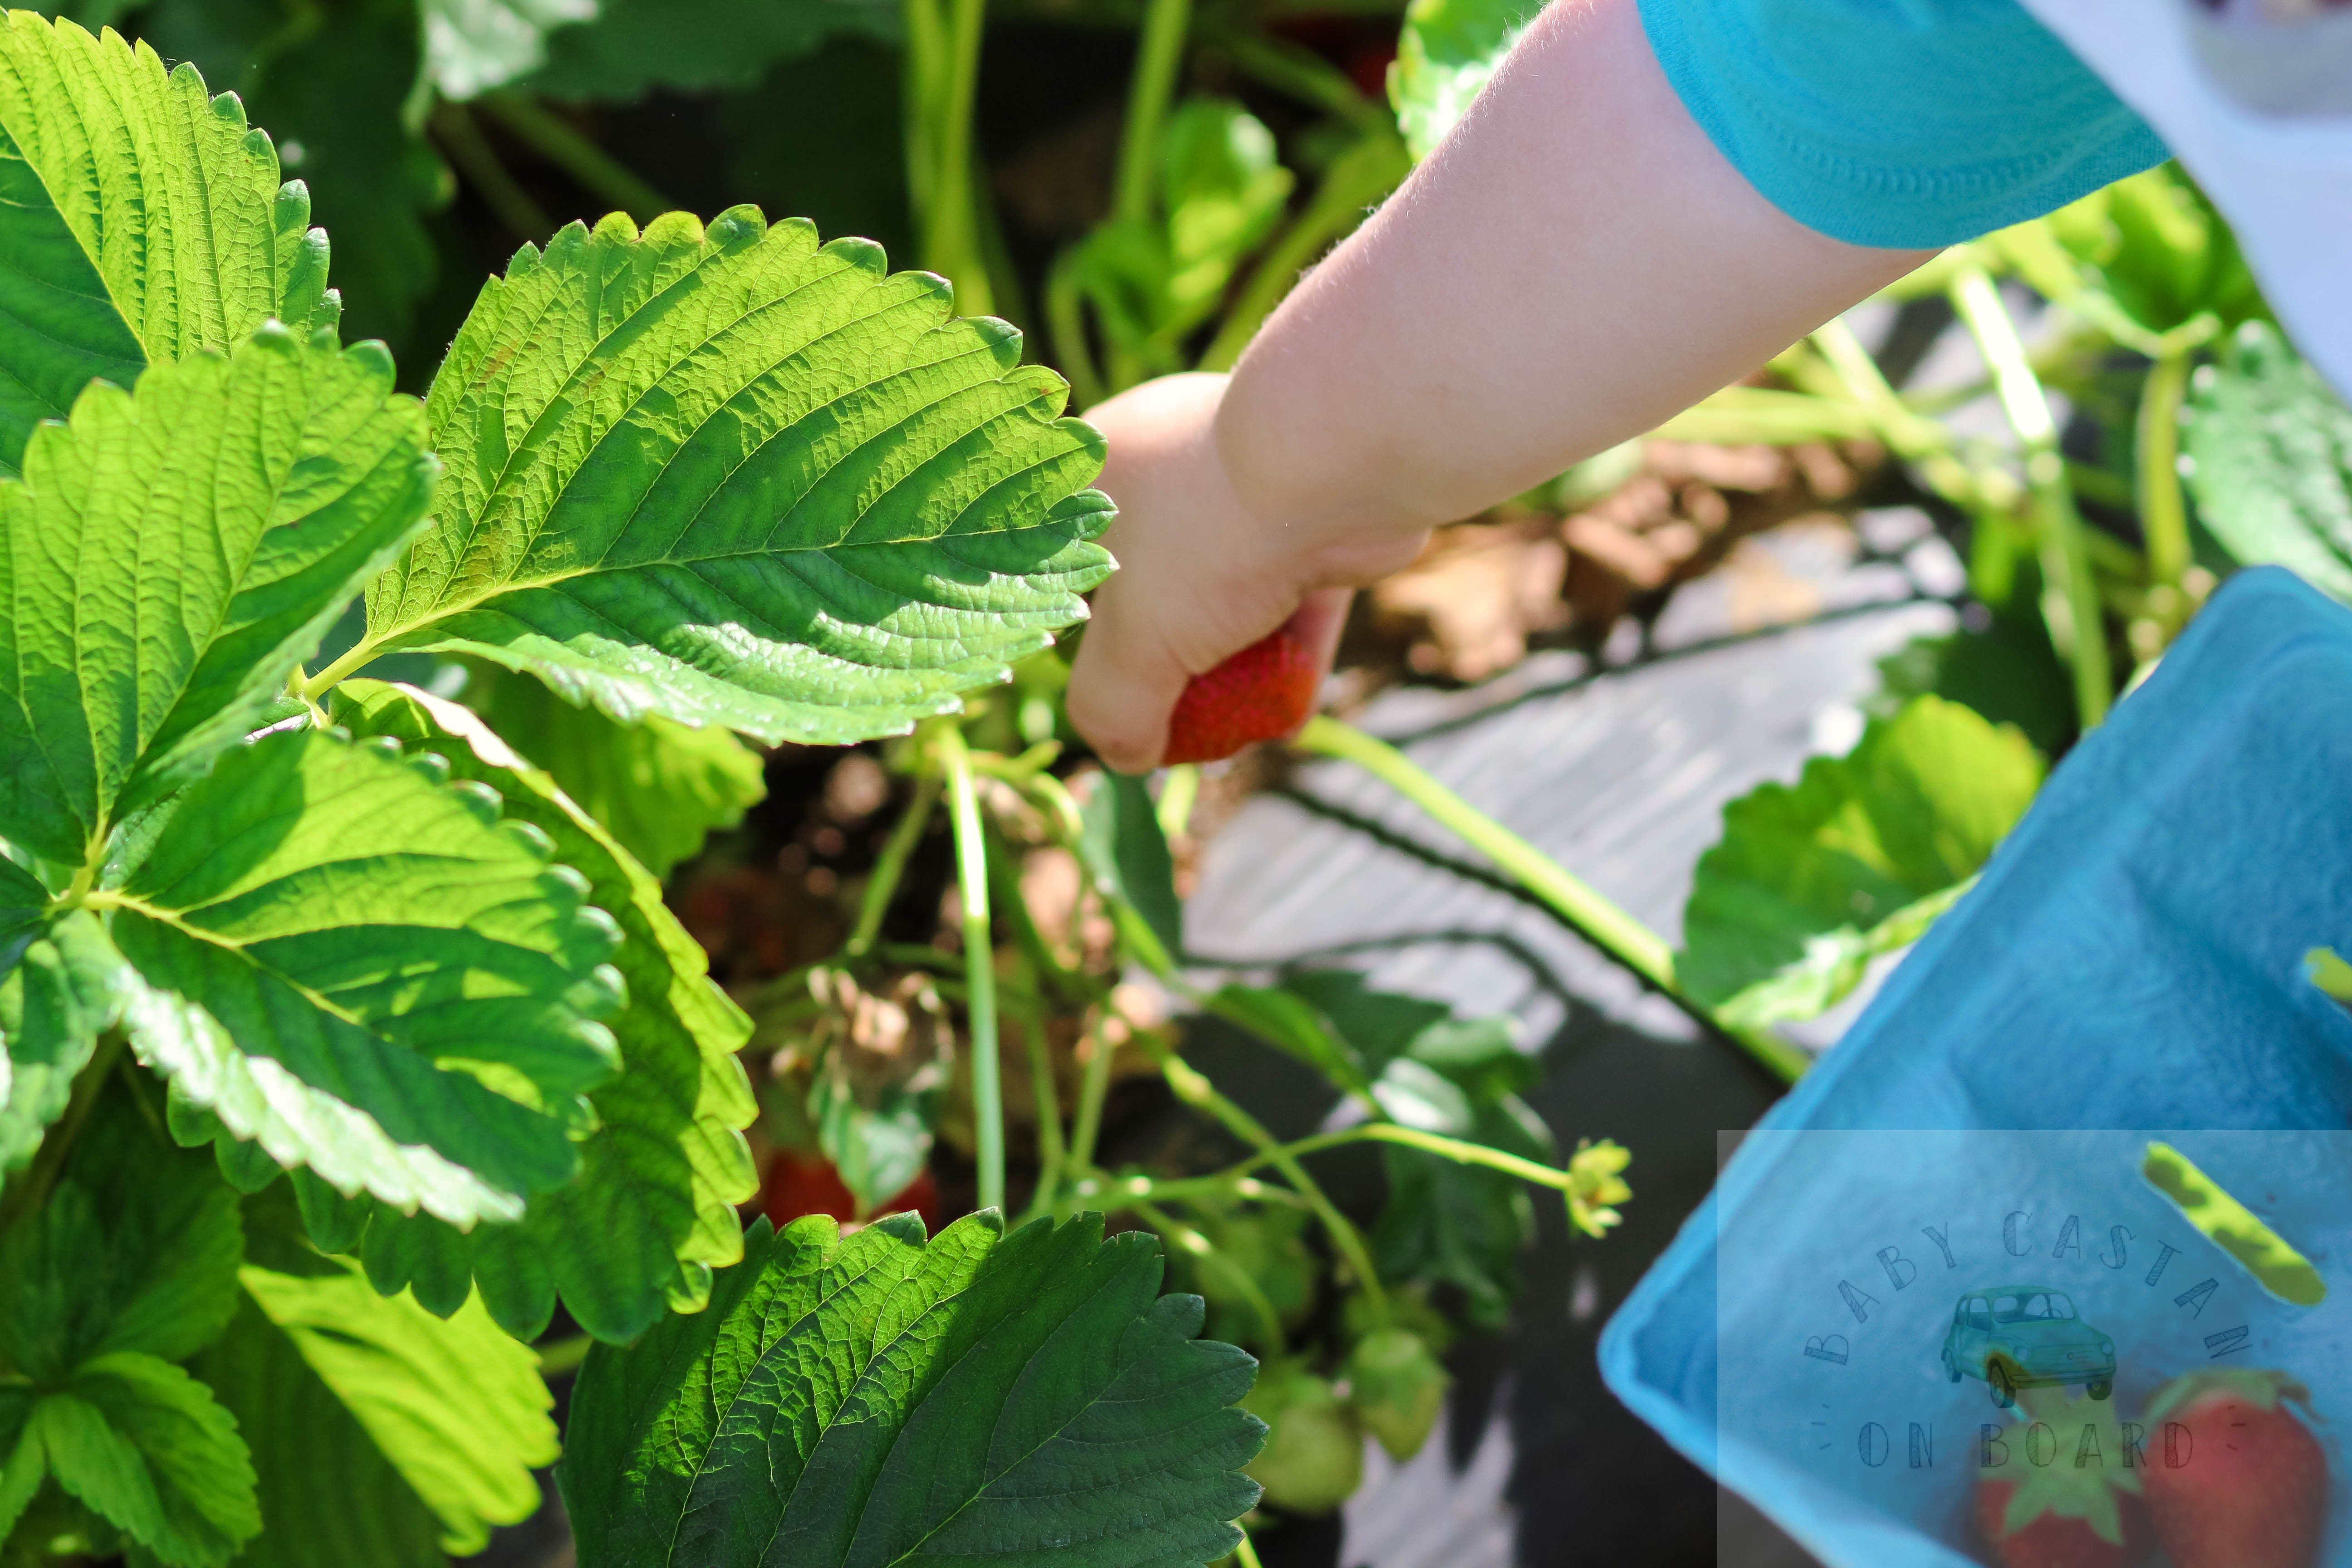 Strawberry picking with toddlers by popular DC mommy blogger Baby Castan on Board